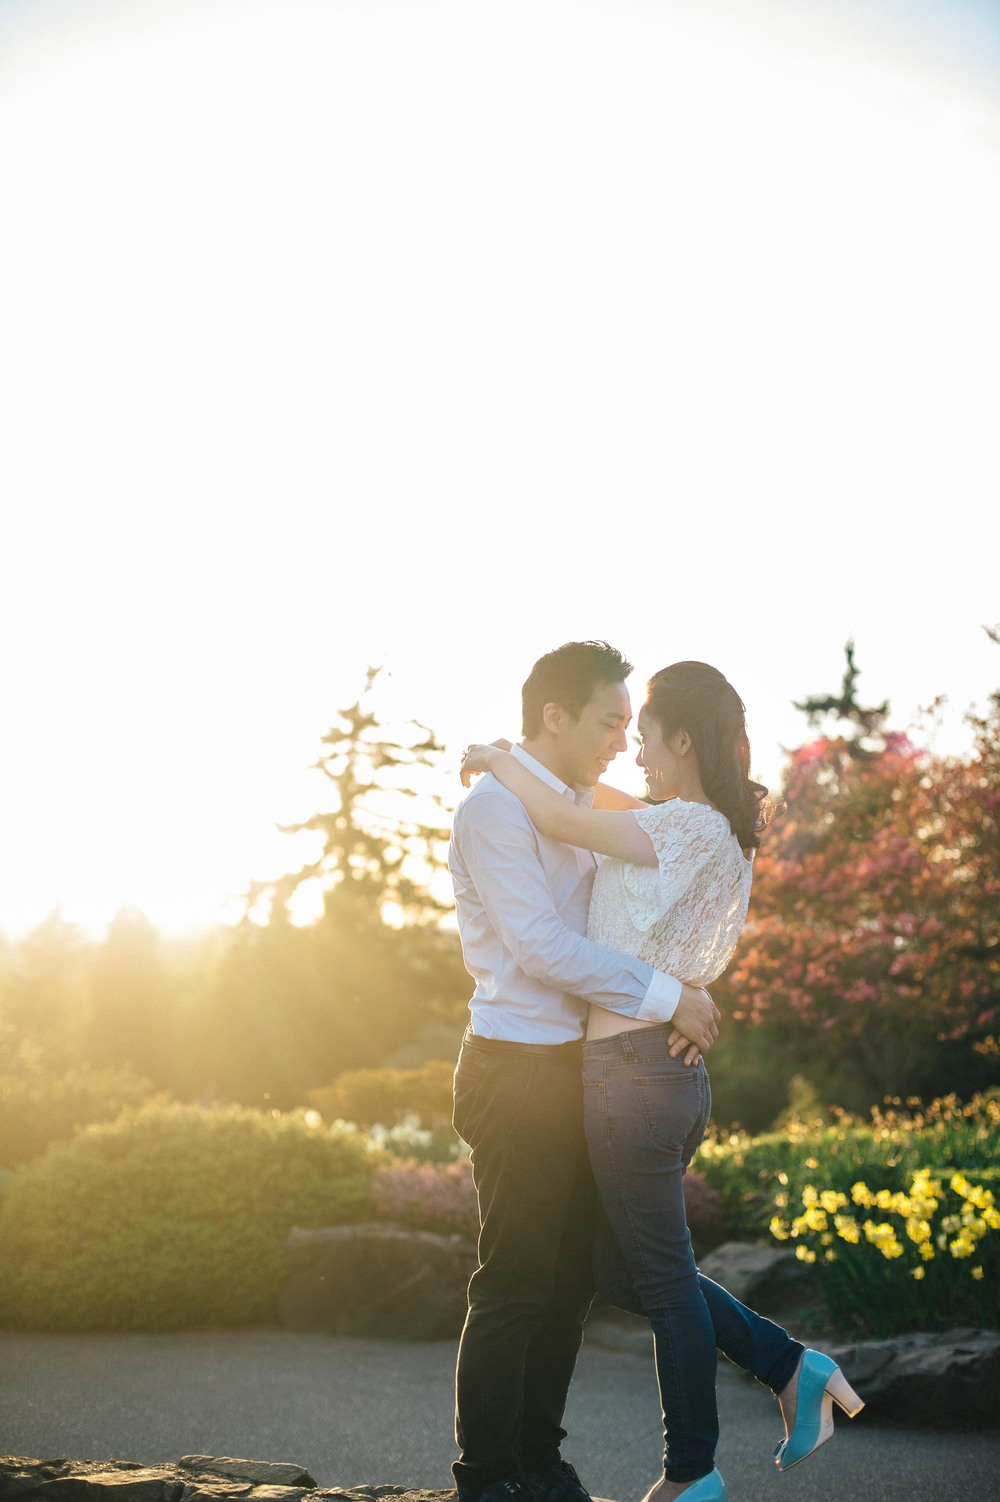 Vancouver Queen Elizabeth Park engagement photography edward lai-18.jpg